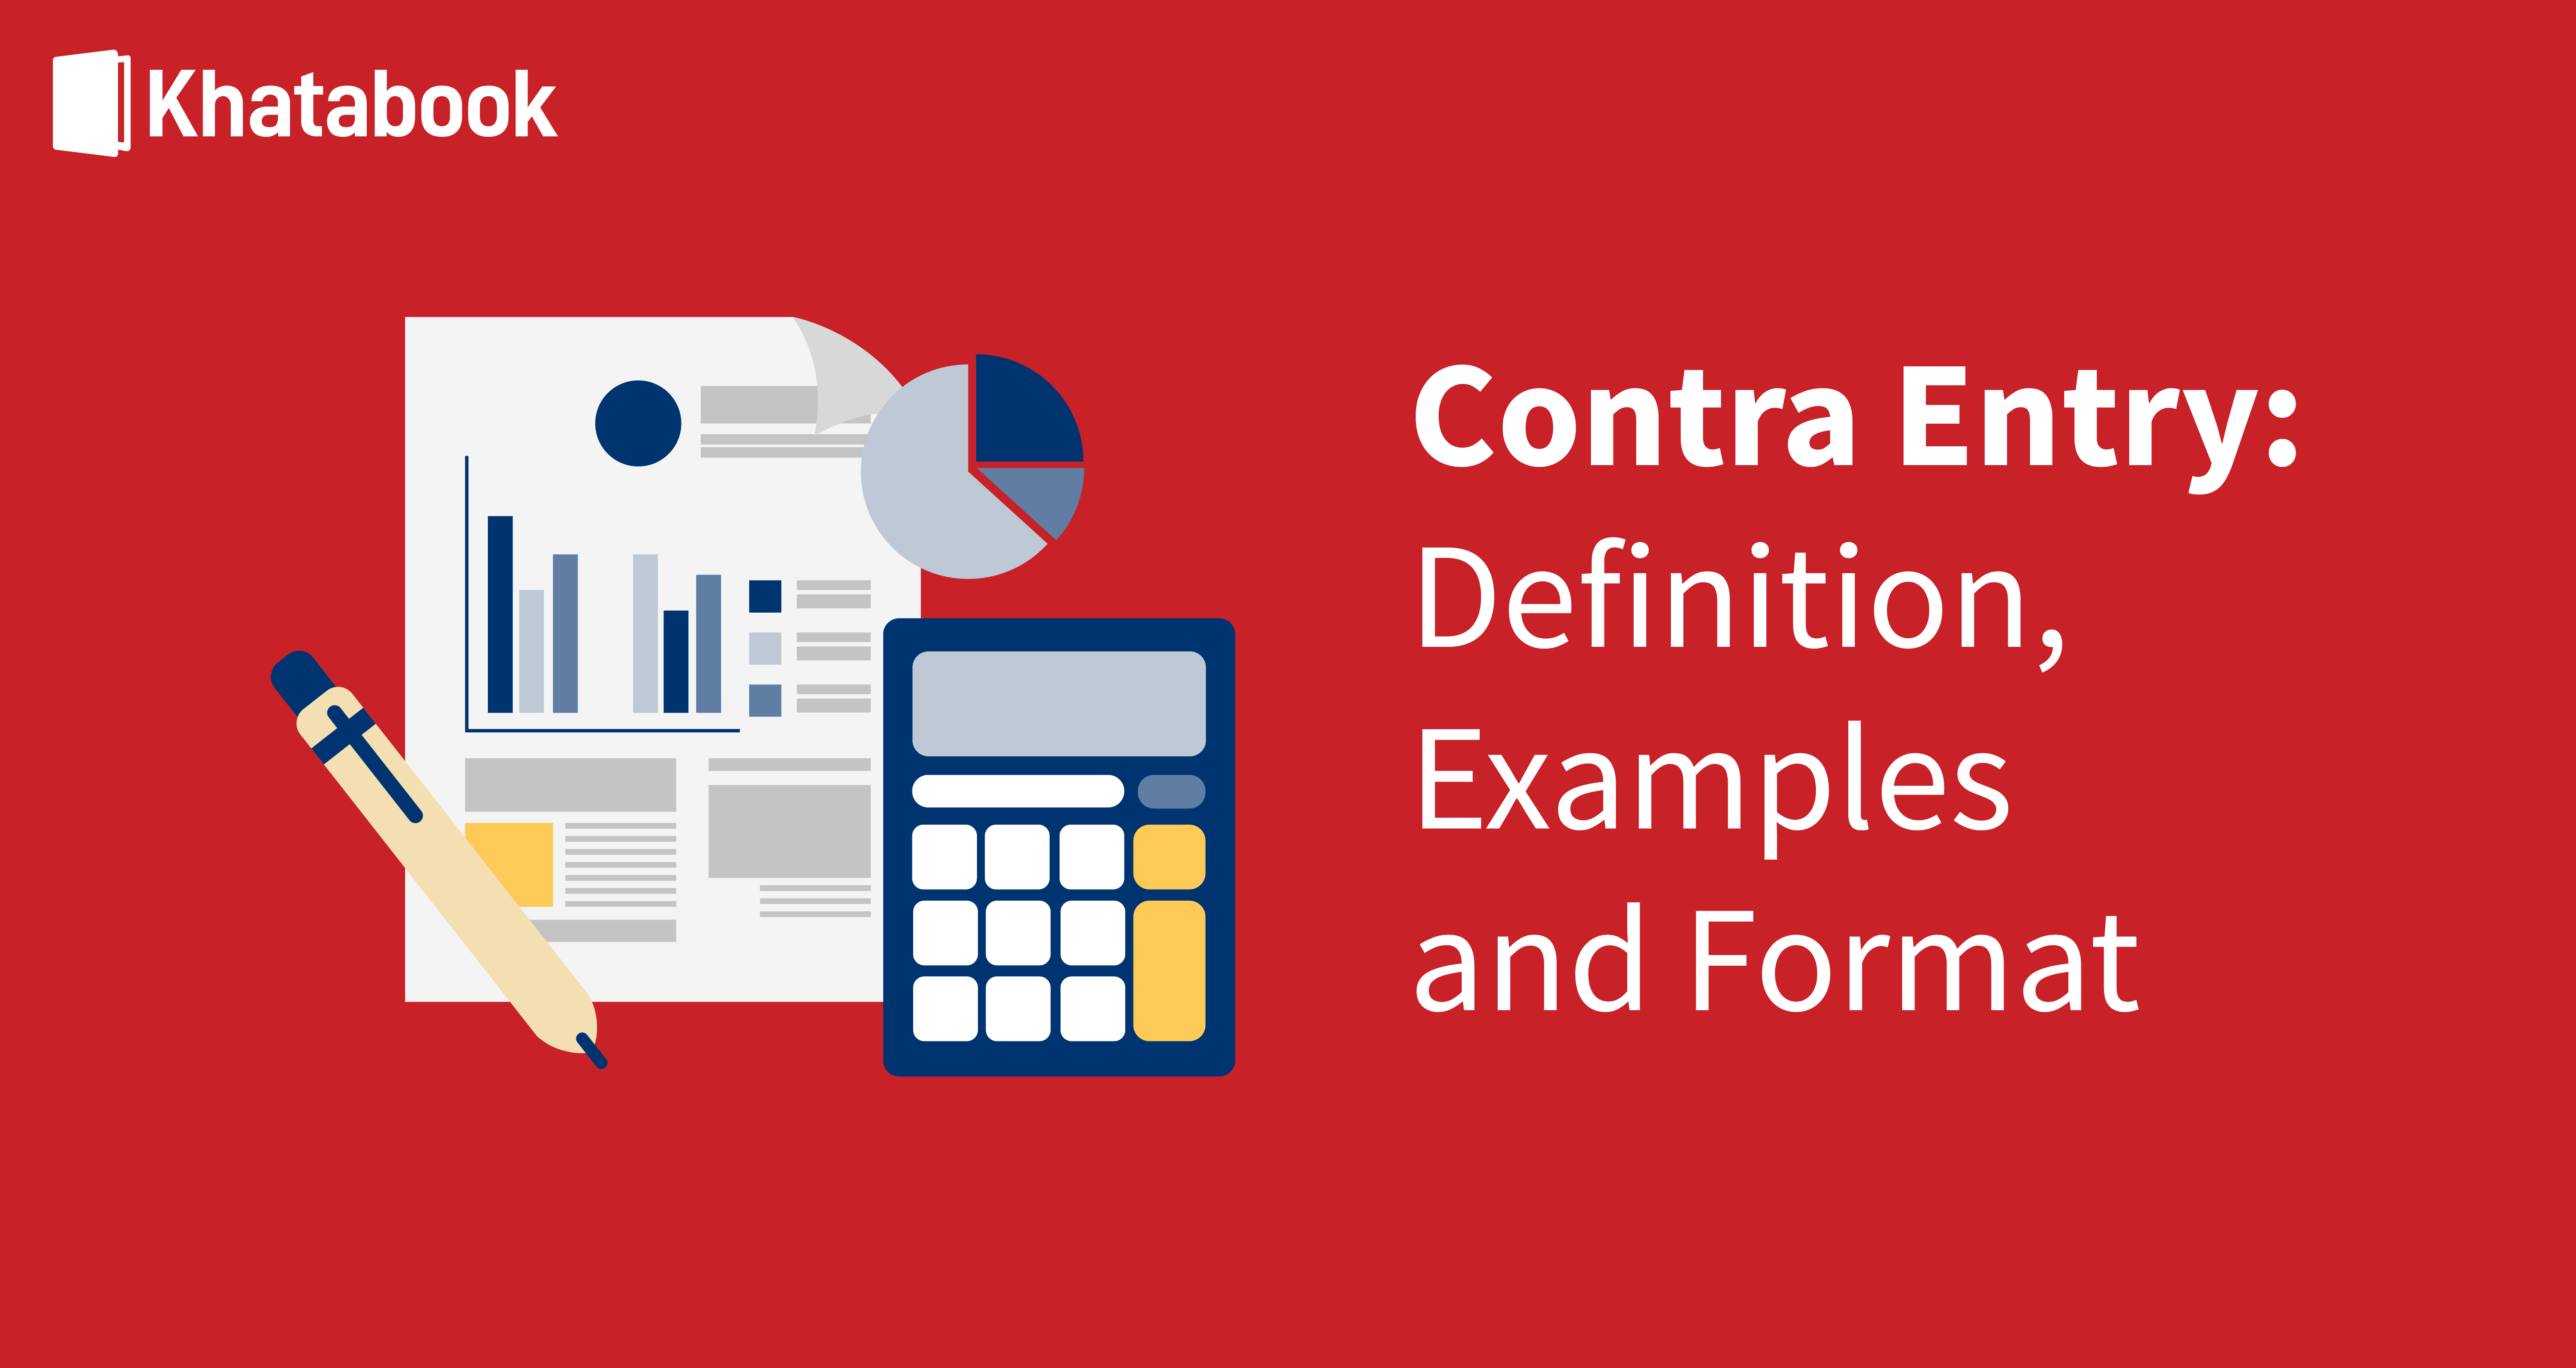 Learn About Contra Entry: Definition, Examples and Format